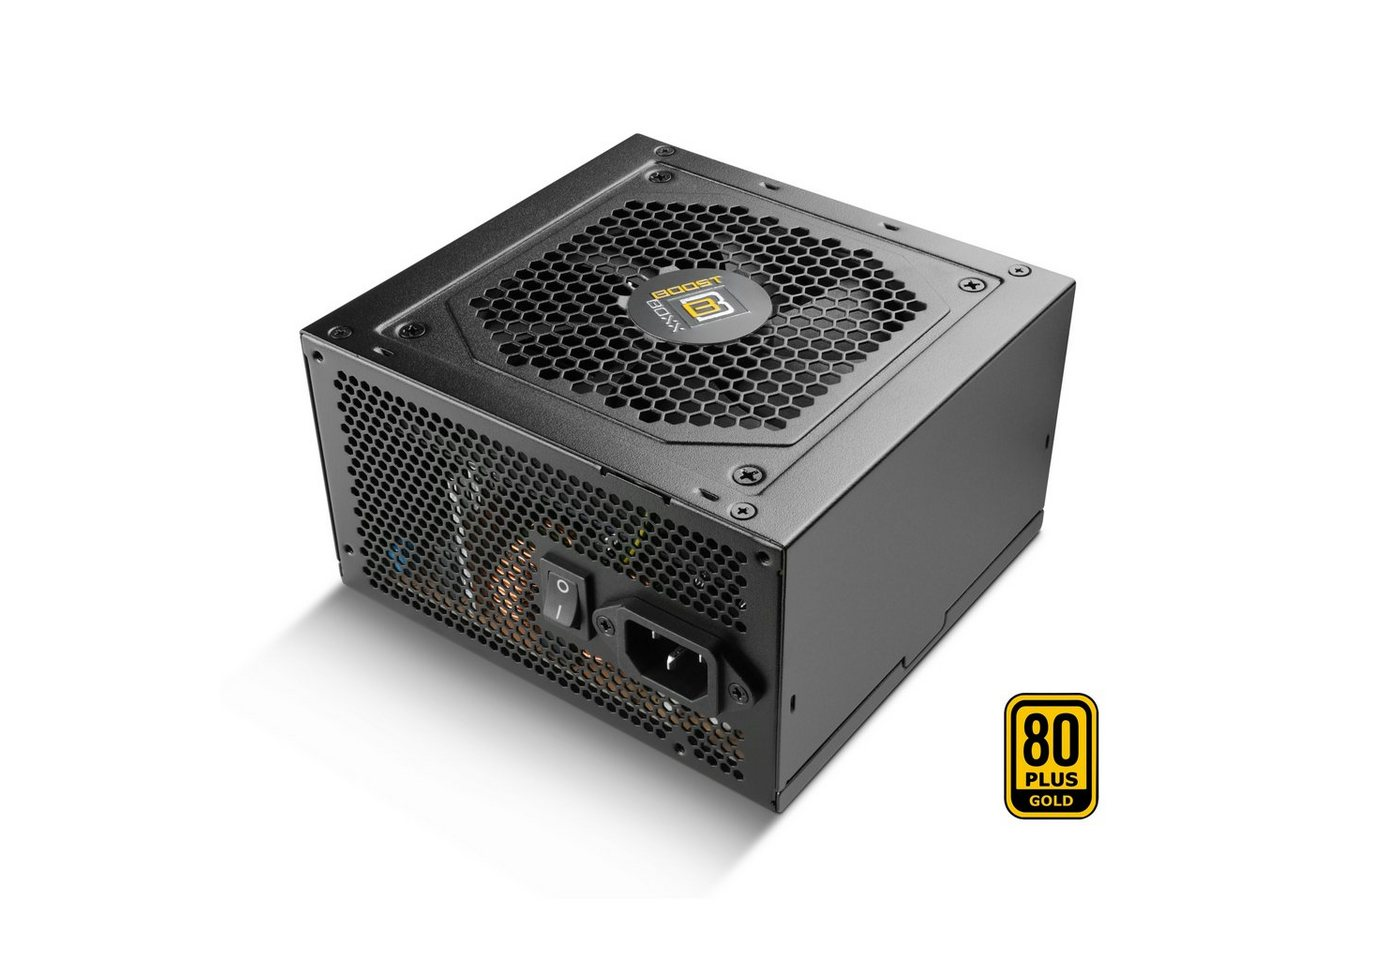 BoostBoxx 600W Power Boost PC-Netzteil »80 Plus Gold Edition«